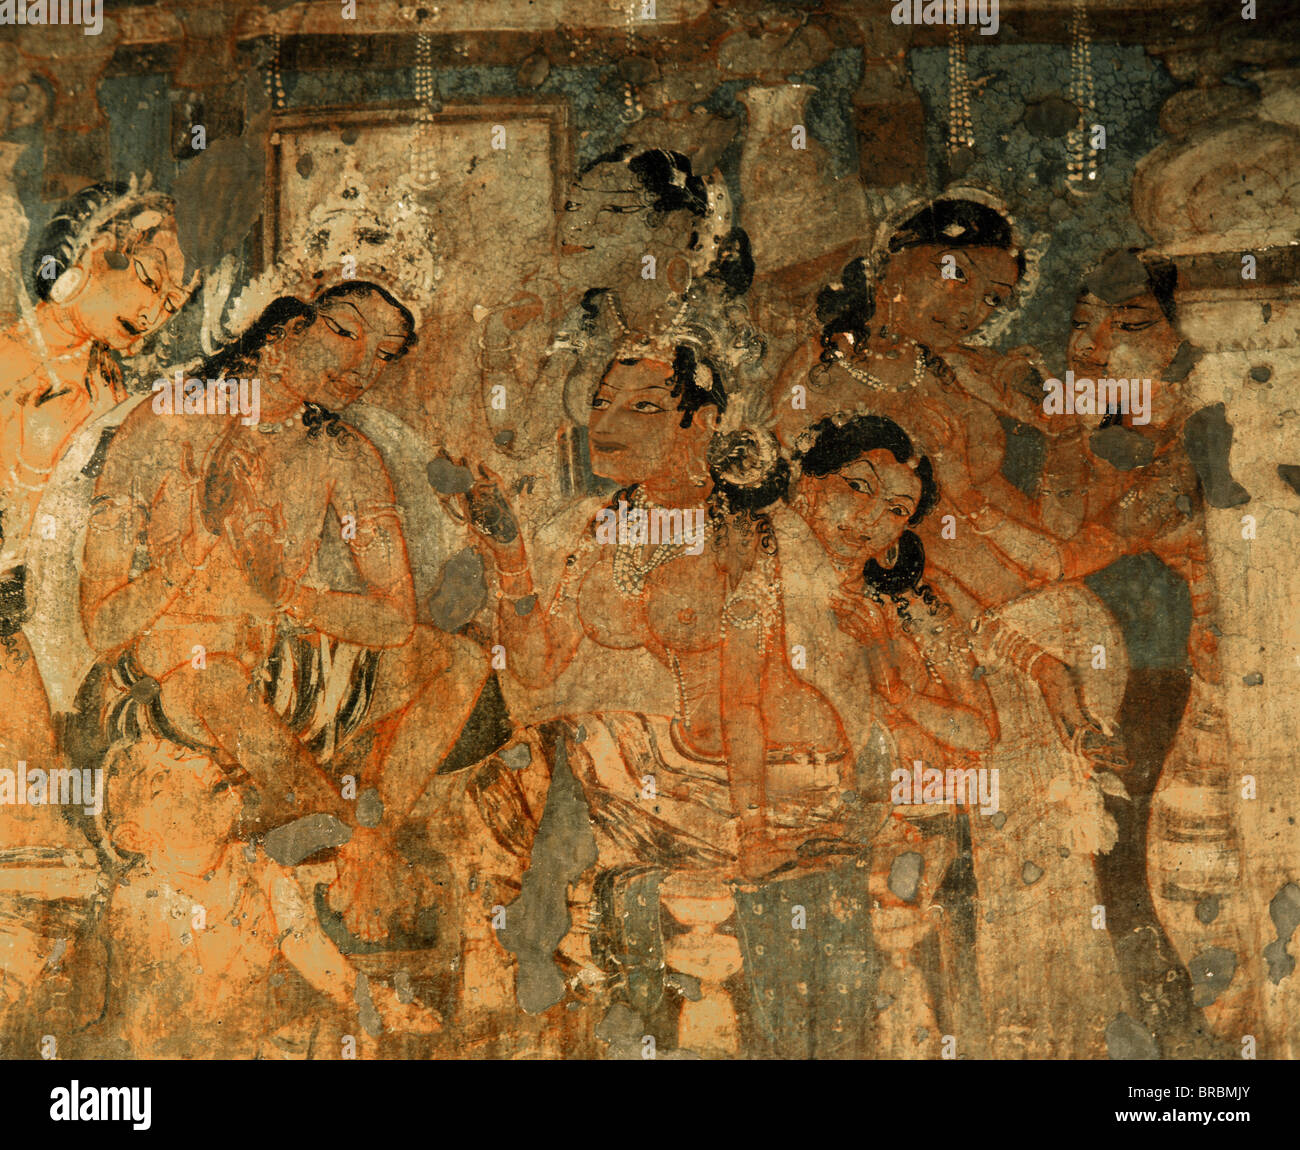 Detail of mural depicting king and queen inside cave no 1 for Ajanta mural painting